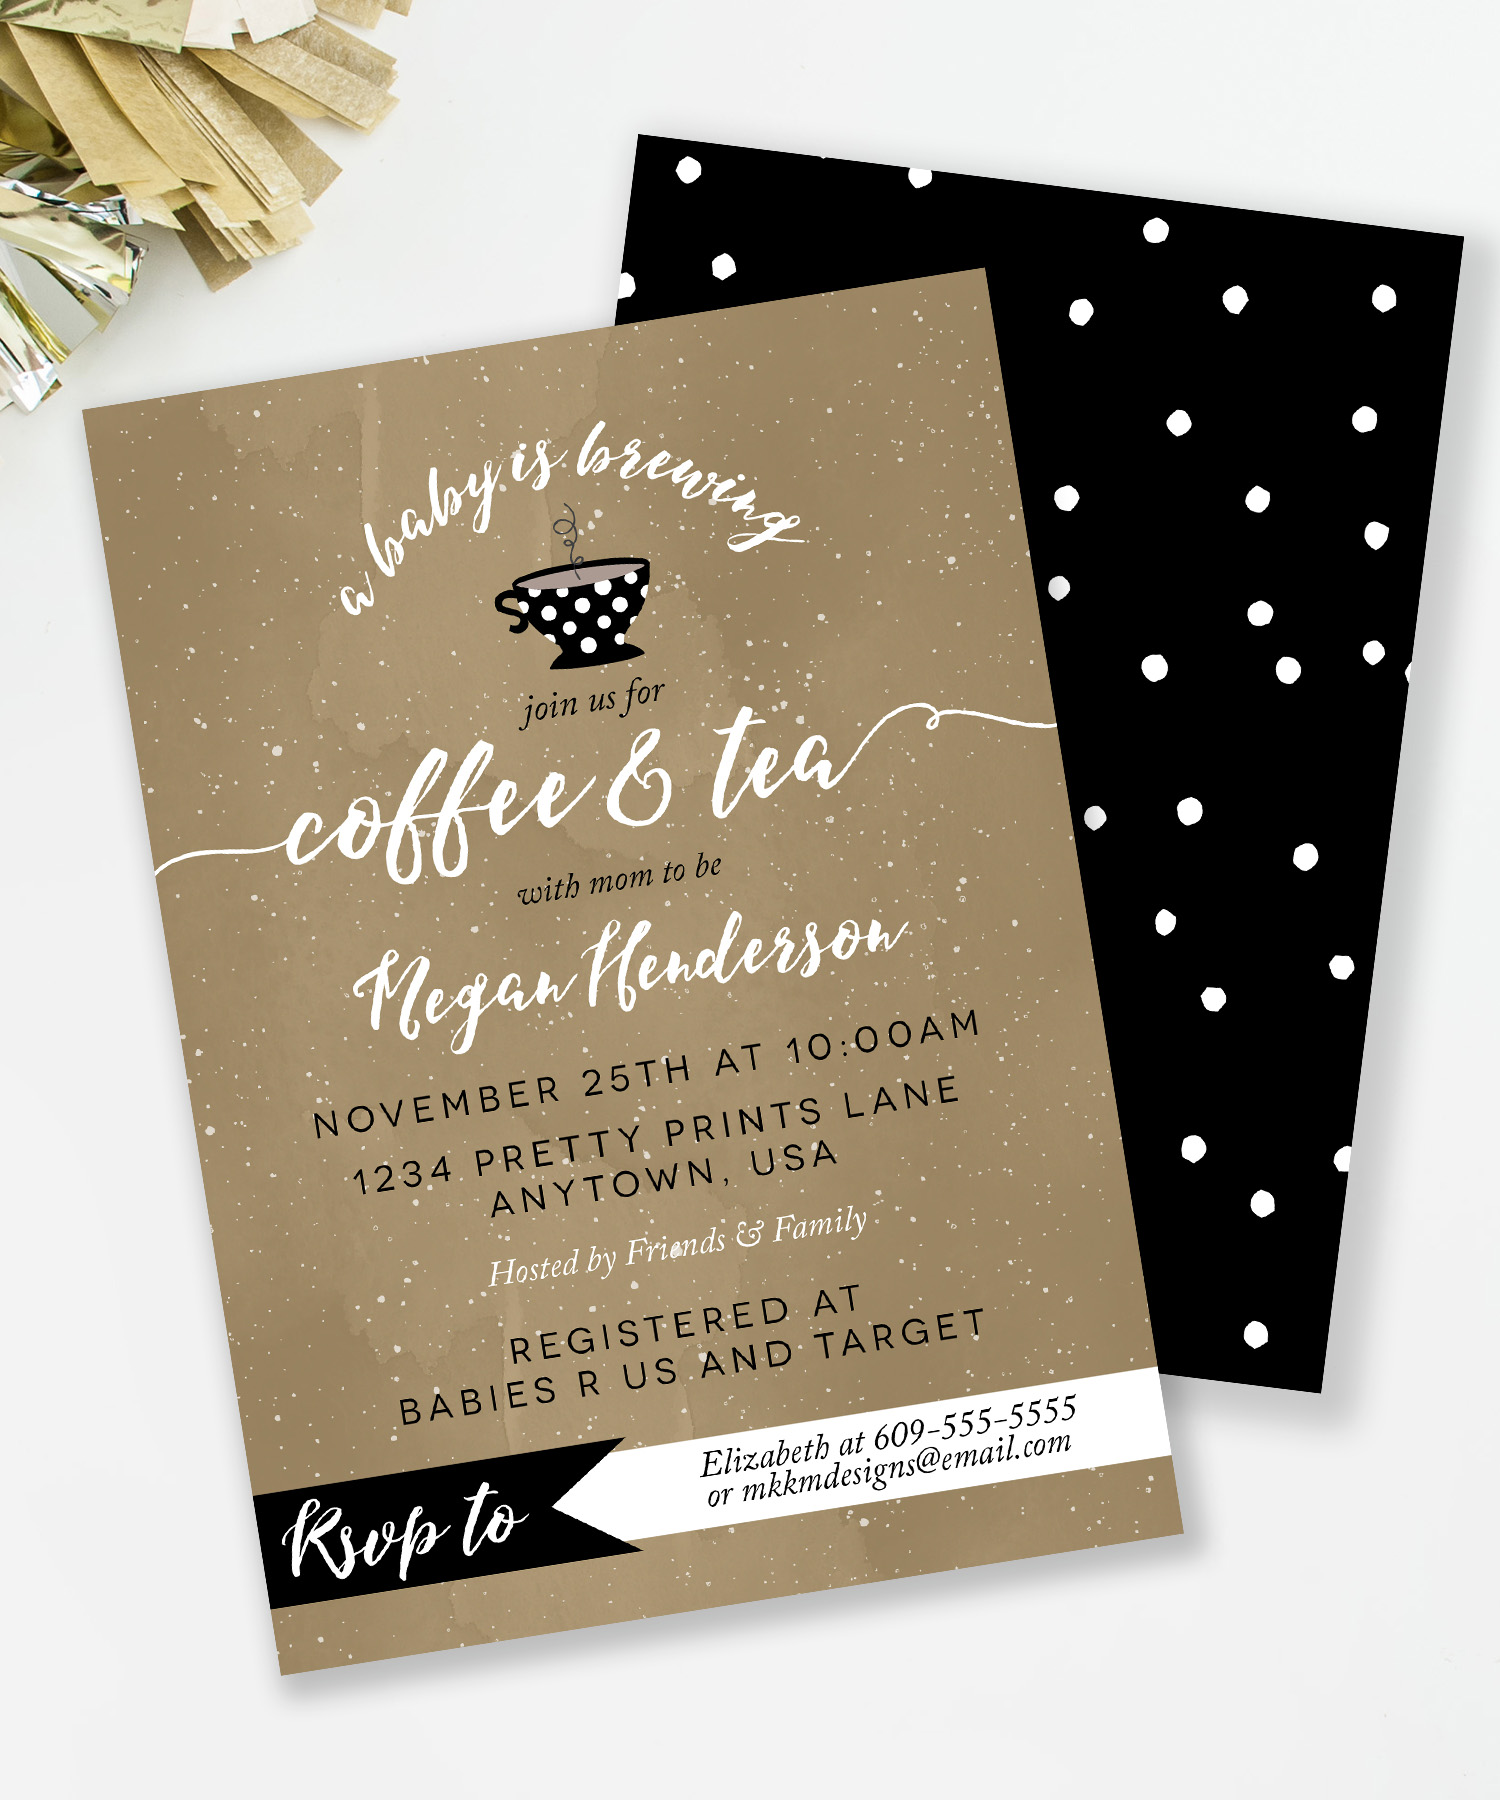 A Baby Is Brewing: A Coffee & Tea Baby Shower — MKKM Designs